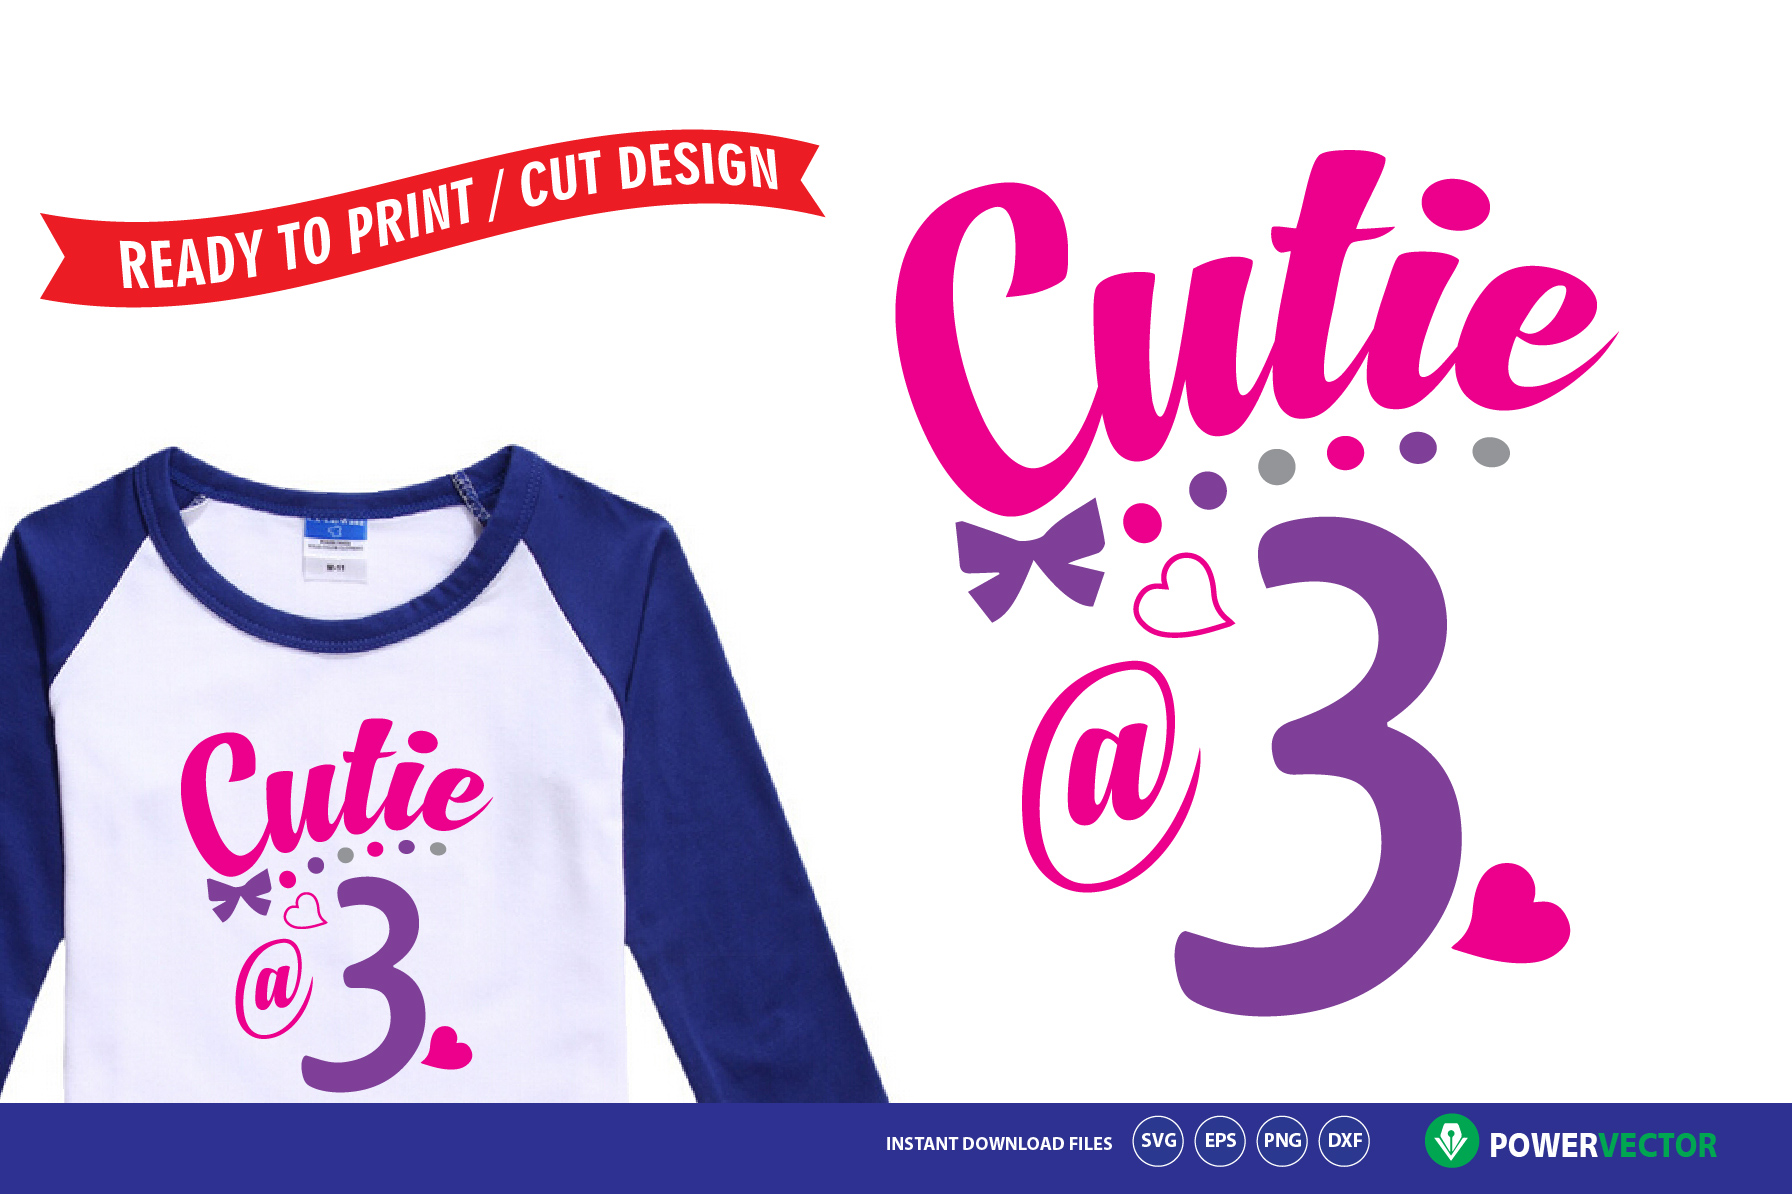 Kids Birthday Party T-Shirt Designs -Printing, Cutting Files example image 4